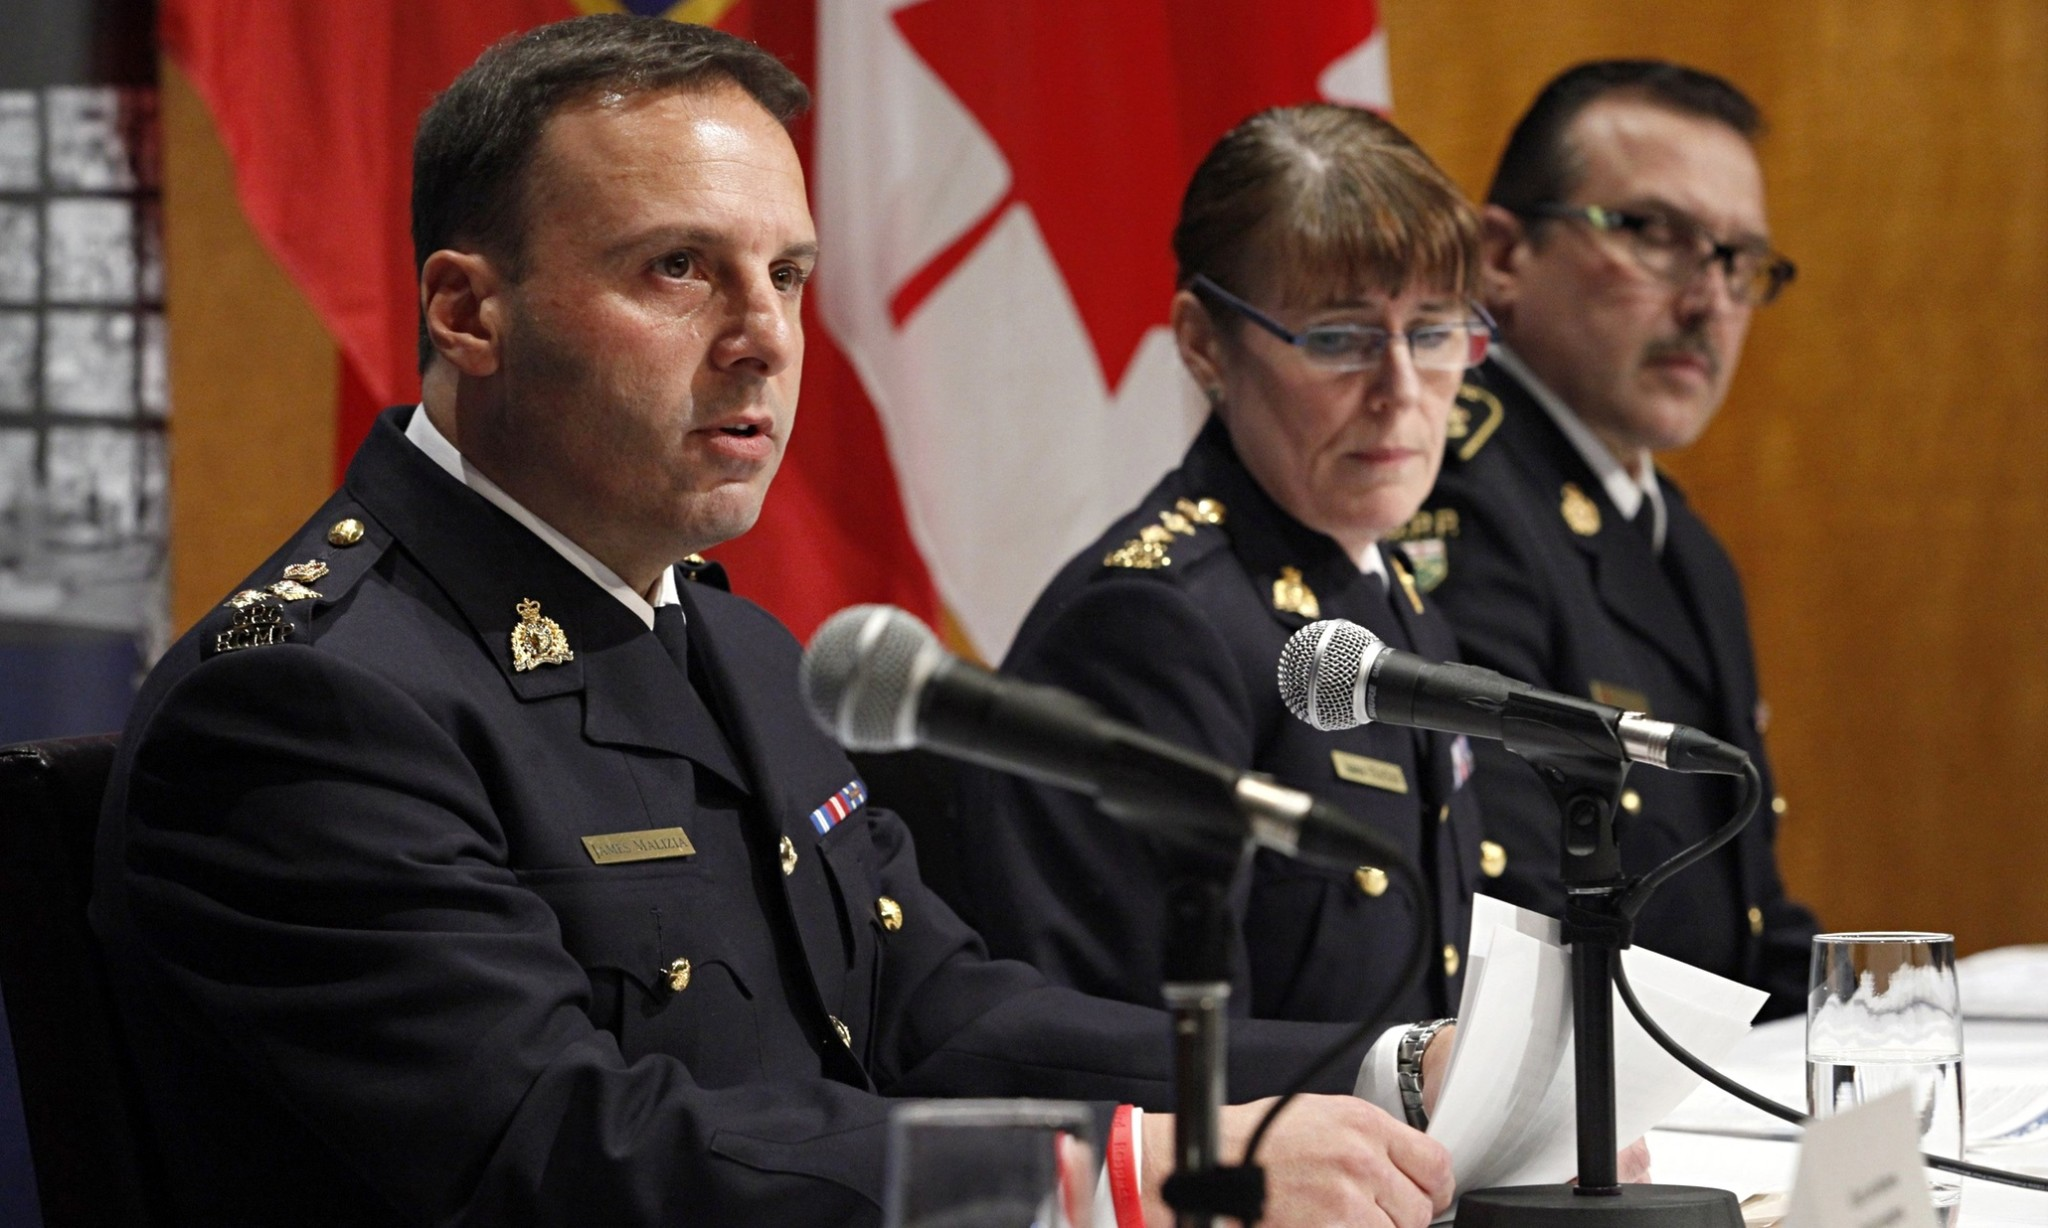 Man arrested in Canada over alleged role in Islamic State recruitment cell